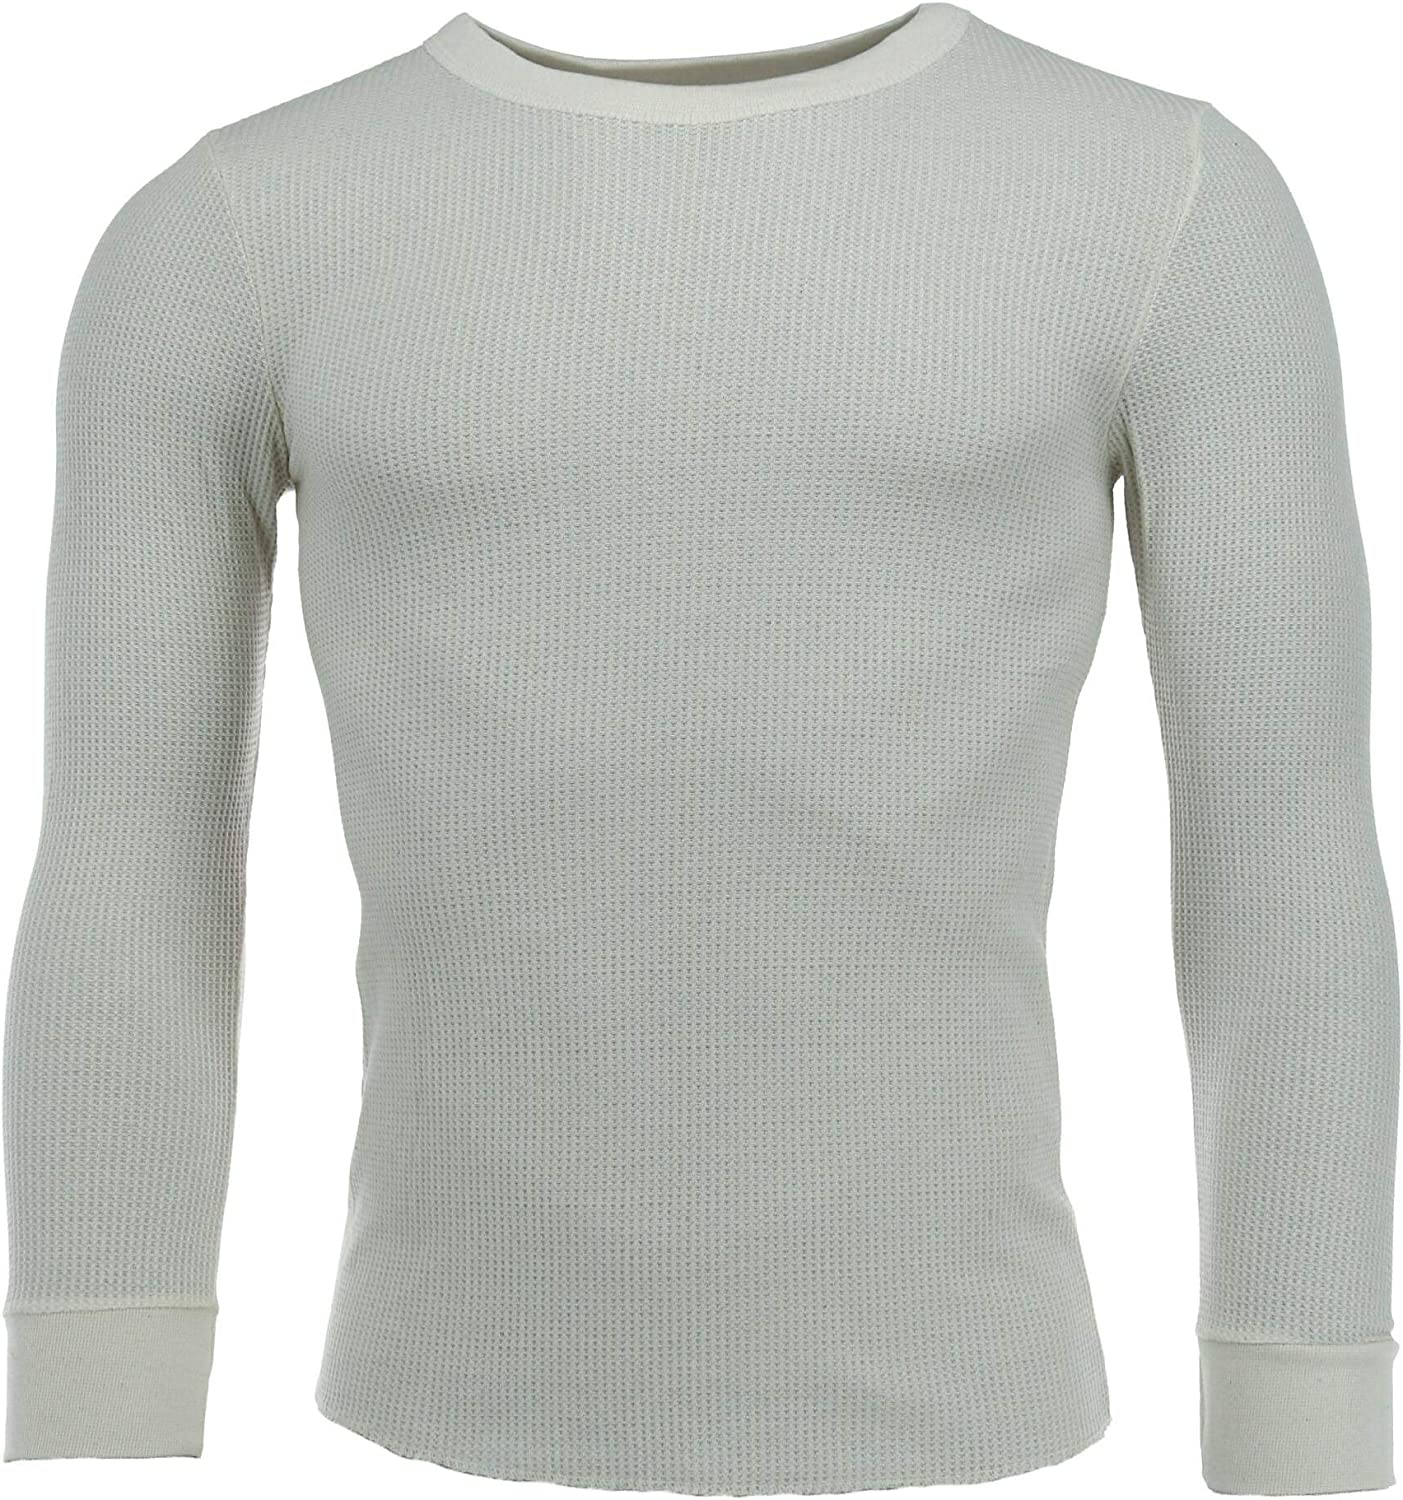 Fruit Of The Loom Mens Big and Tall Thermal Crew Neck Shirt